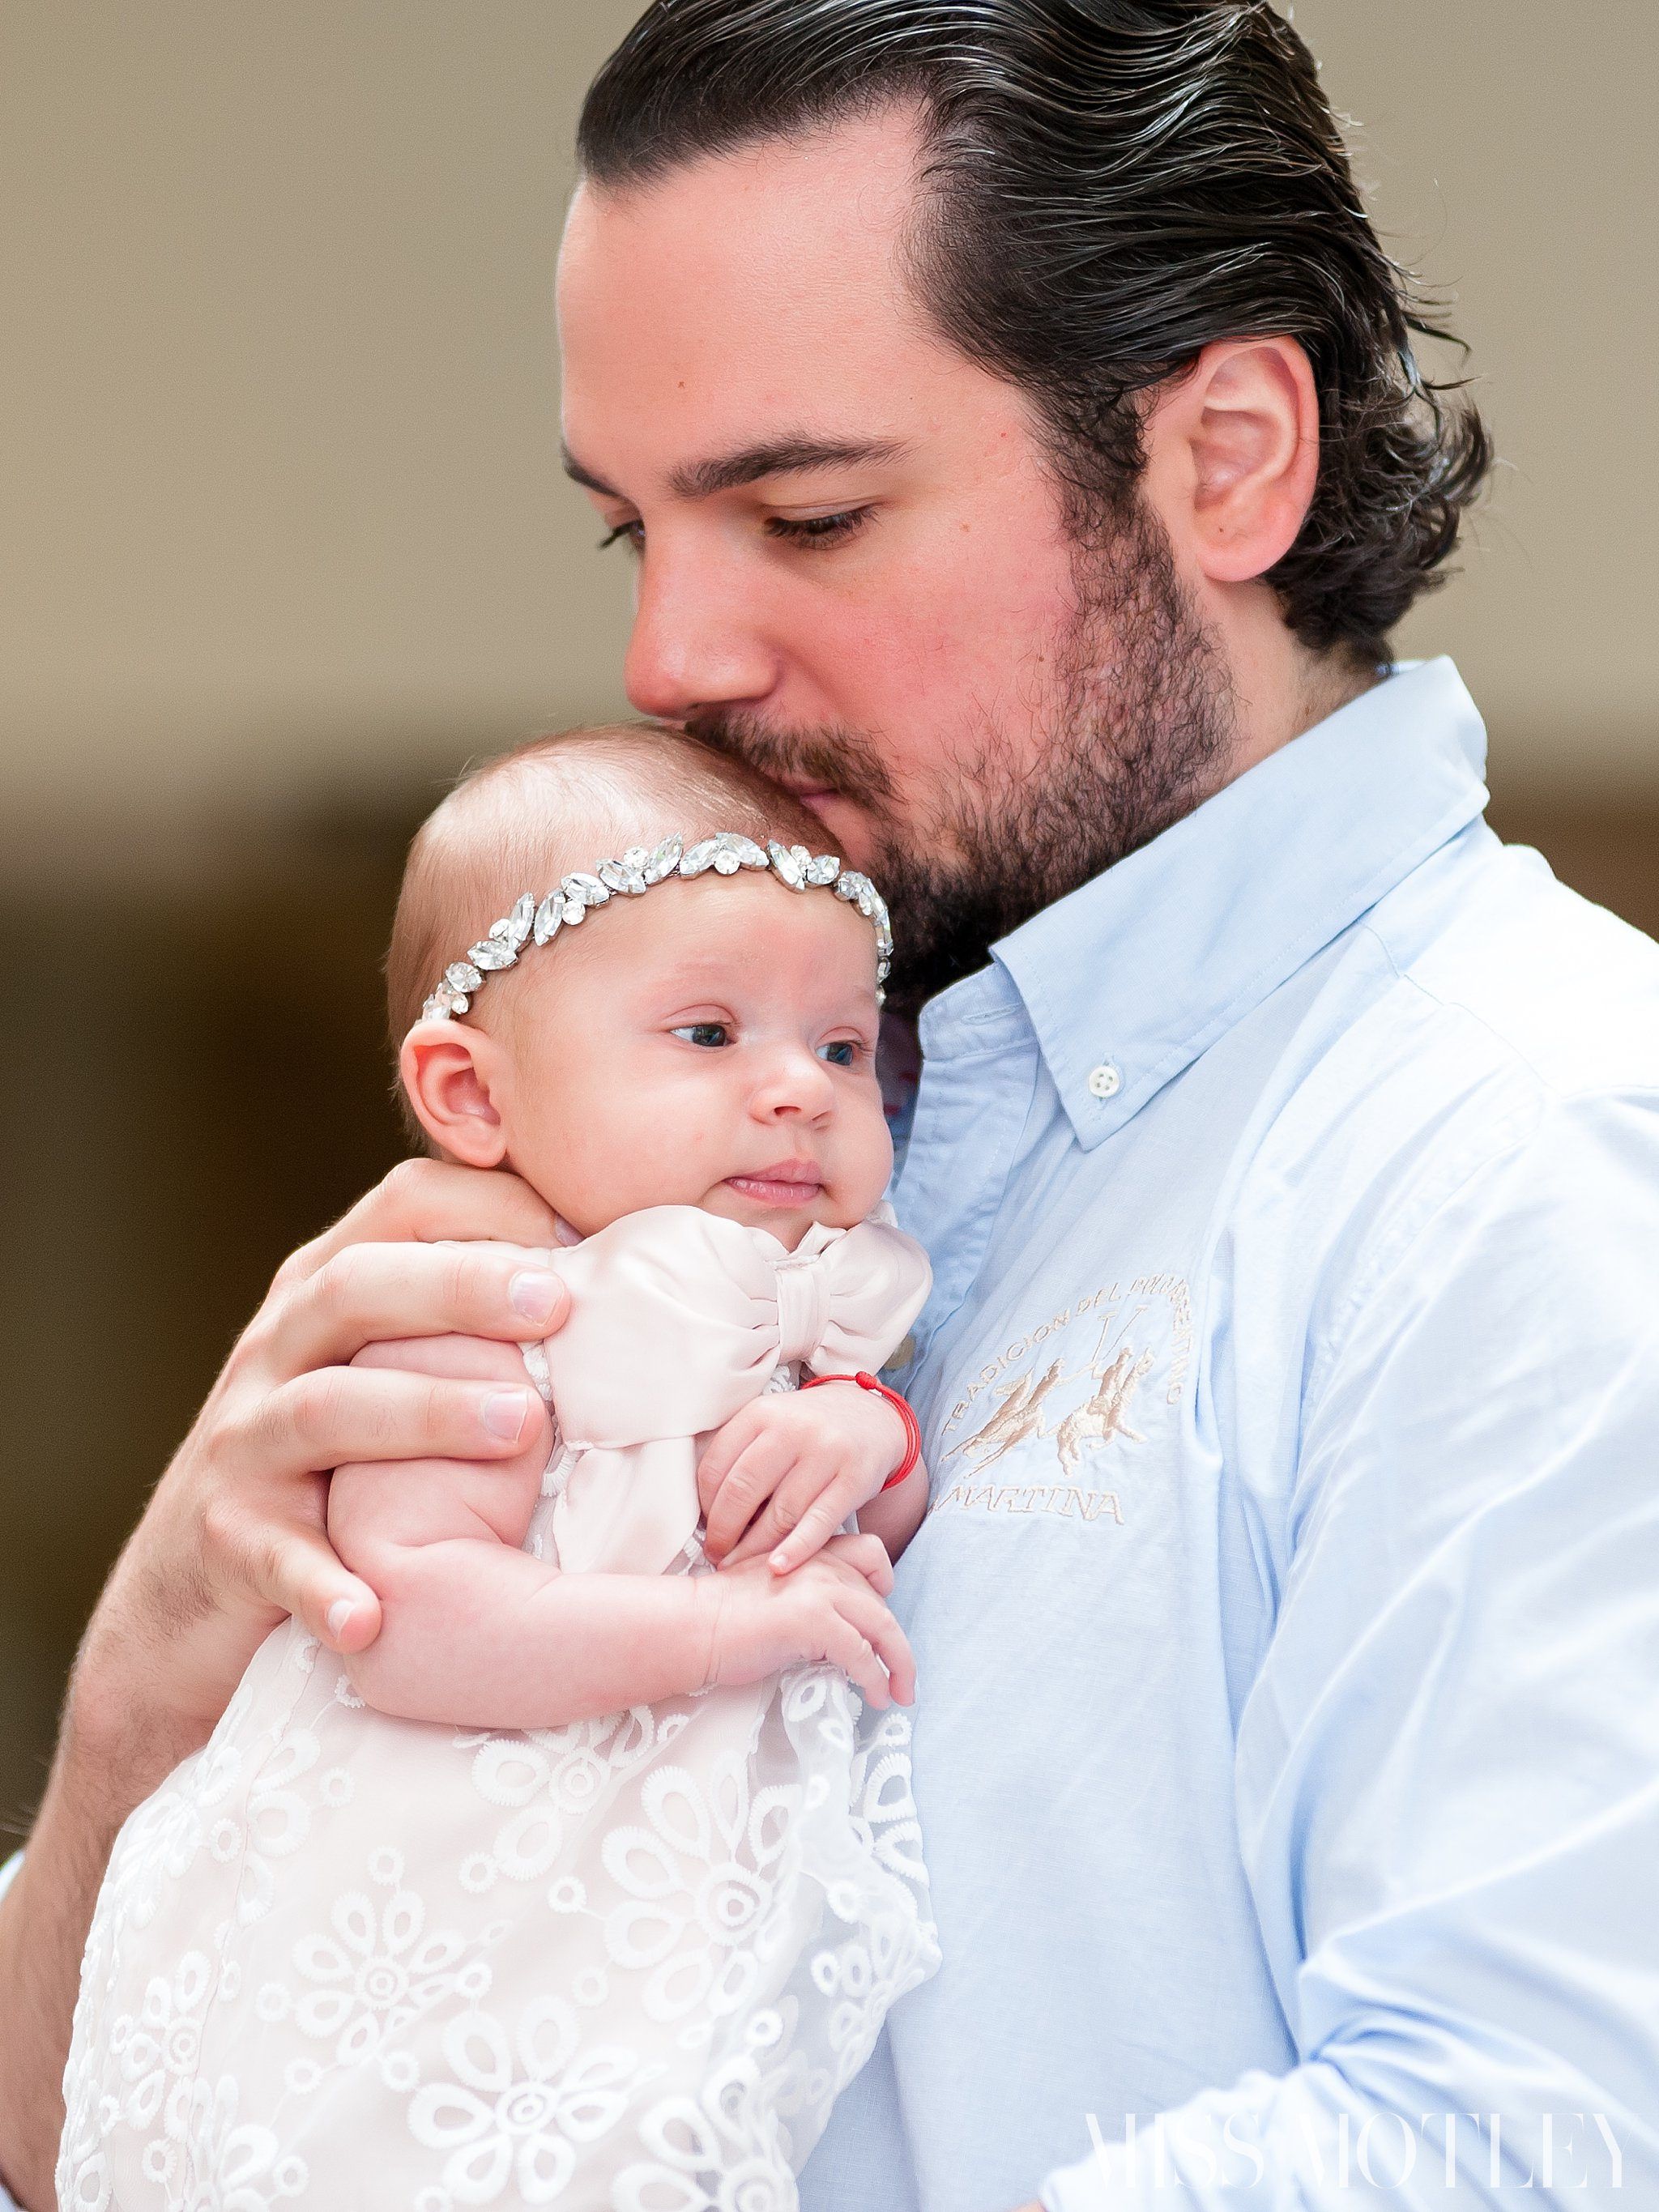 How precious is baby Siena snuggling with her daddy… #Swoon <3